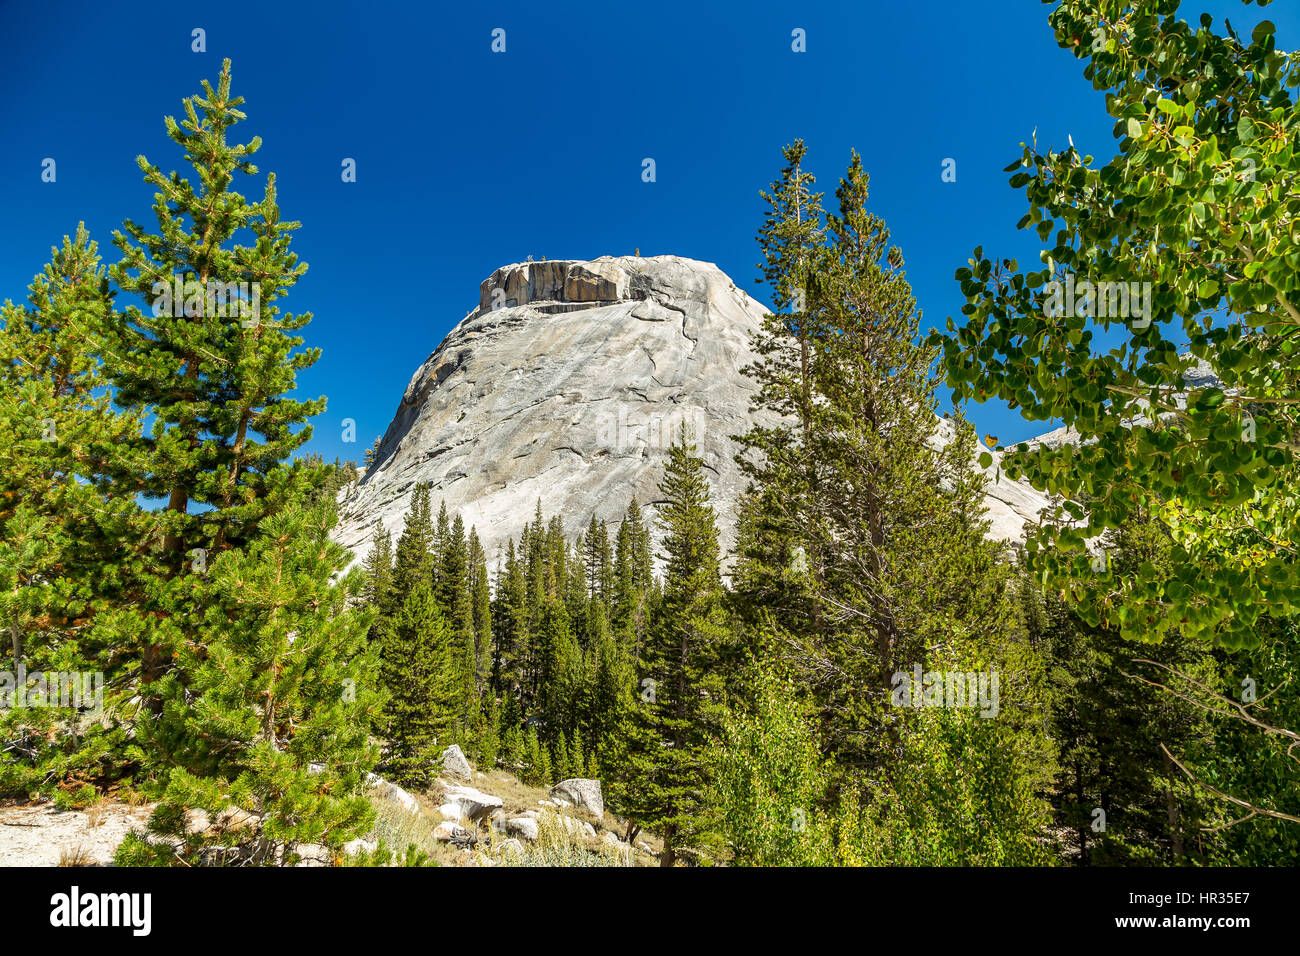 Polly Dome is a prominent granite dome rising 1,640 feet (500 m) above the northwest side of Tenaya Lake and Tioga Stock Photo